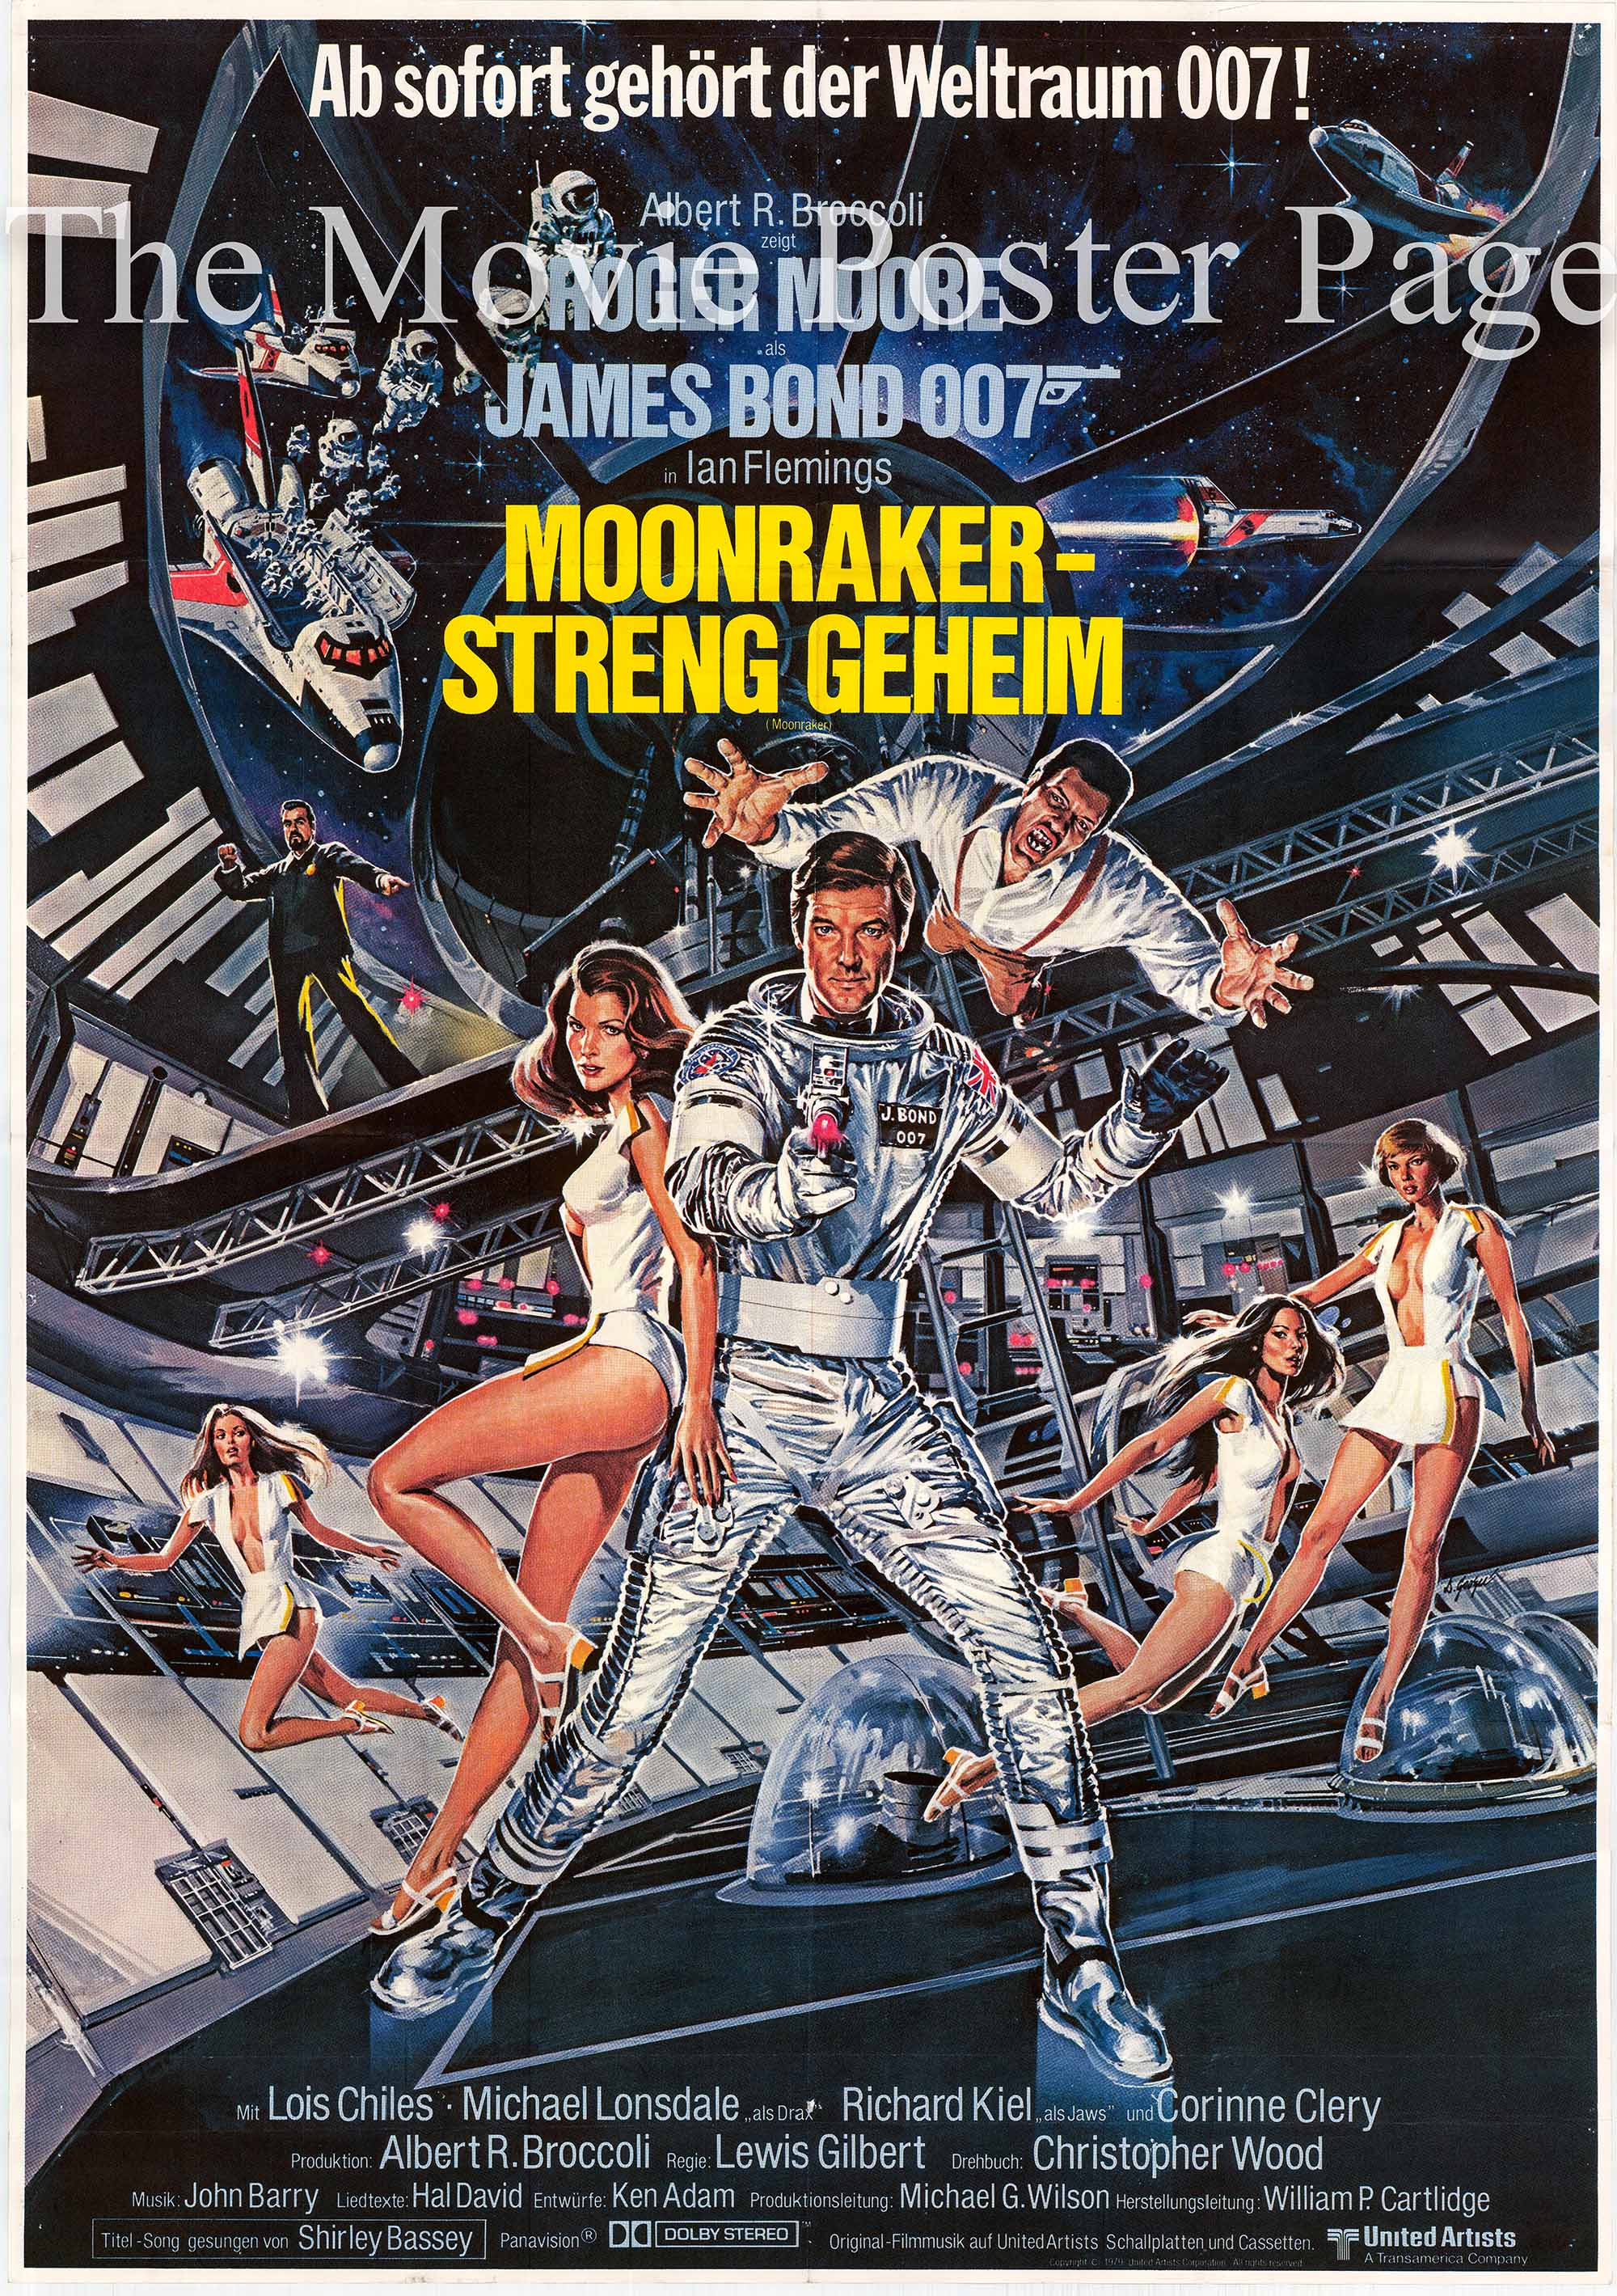 Pictured is a German two-sheet promotional poster for the 1979 Lewis Gilbert film Moonraker starring Roger Moore.